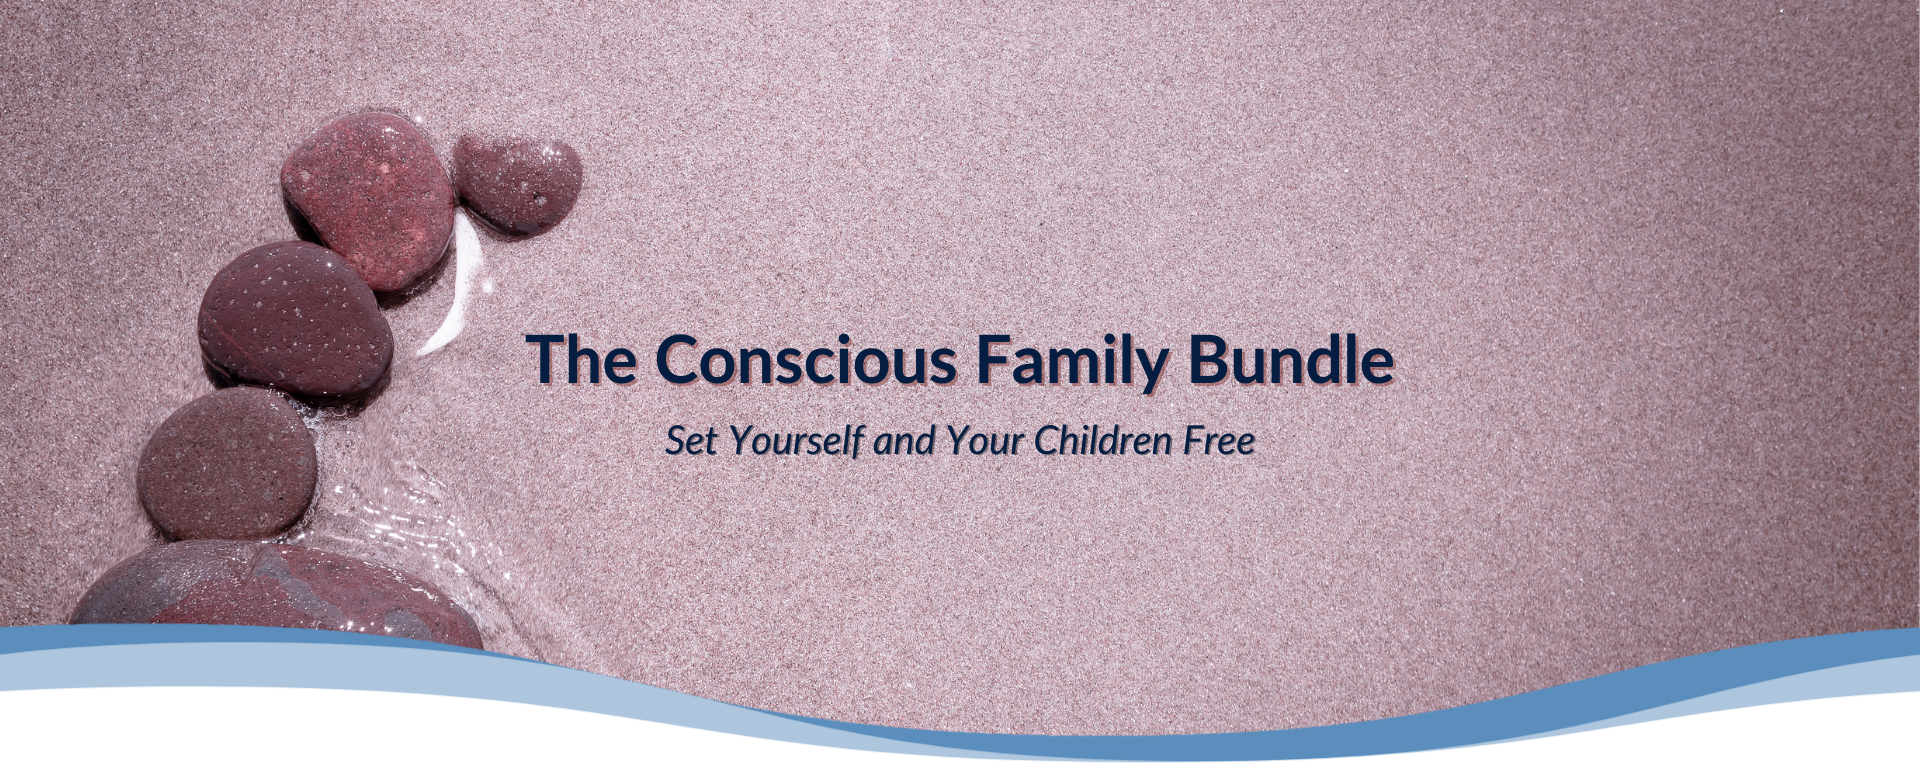 The Conscious Family